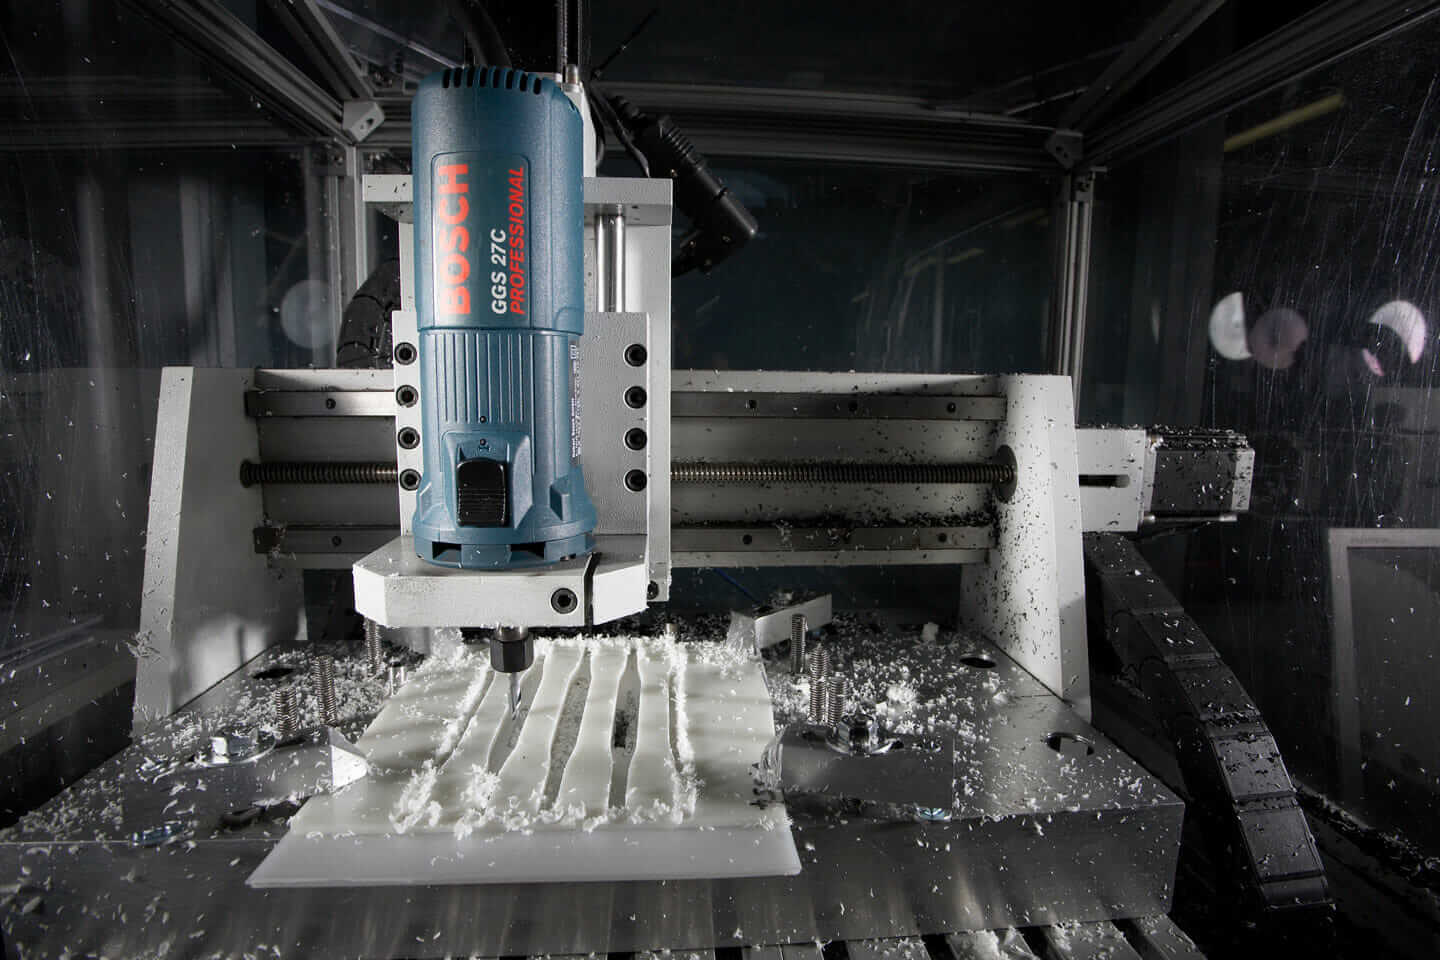 A close-up view of a CNC profile cutter used to cut molded plastic